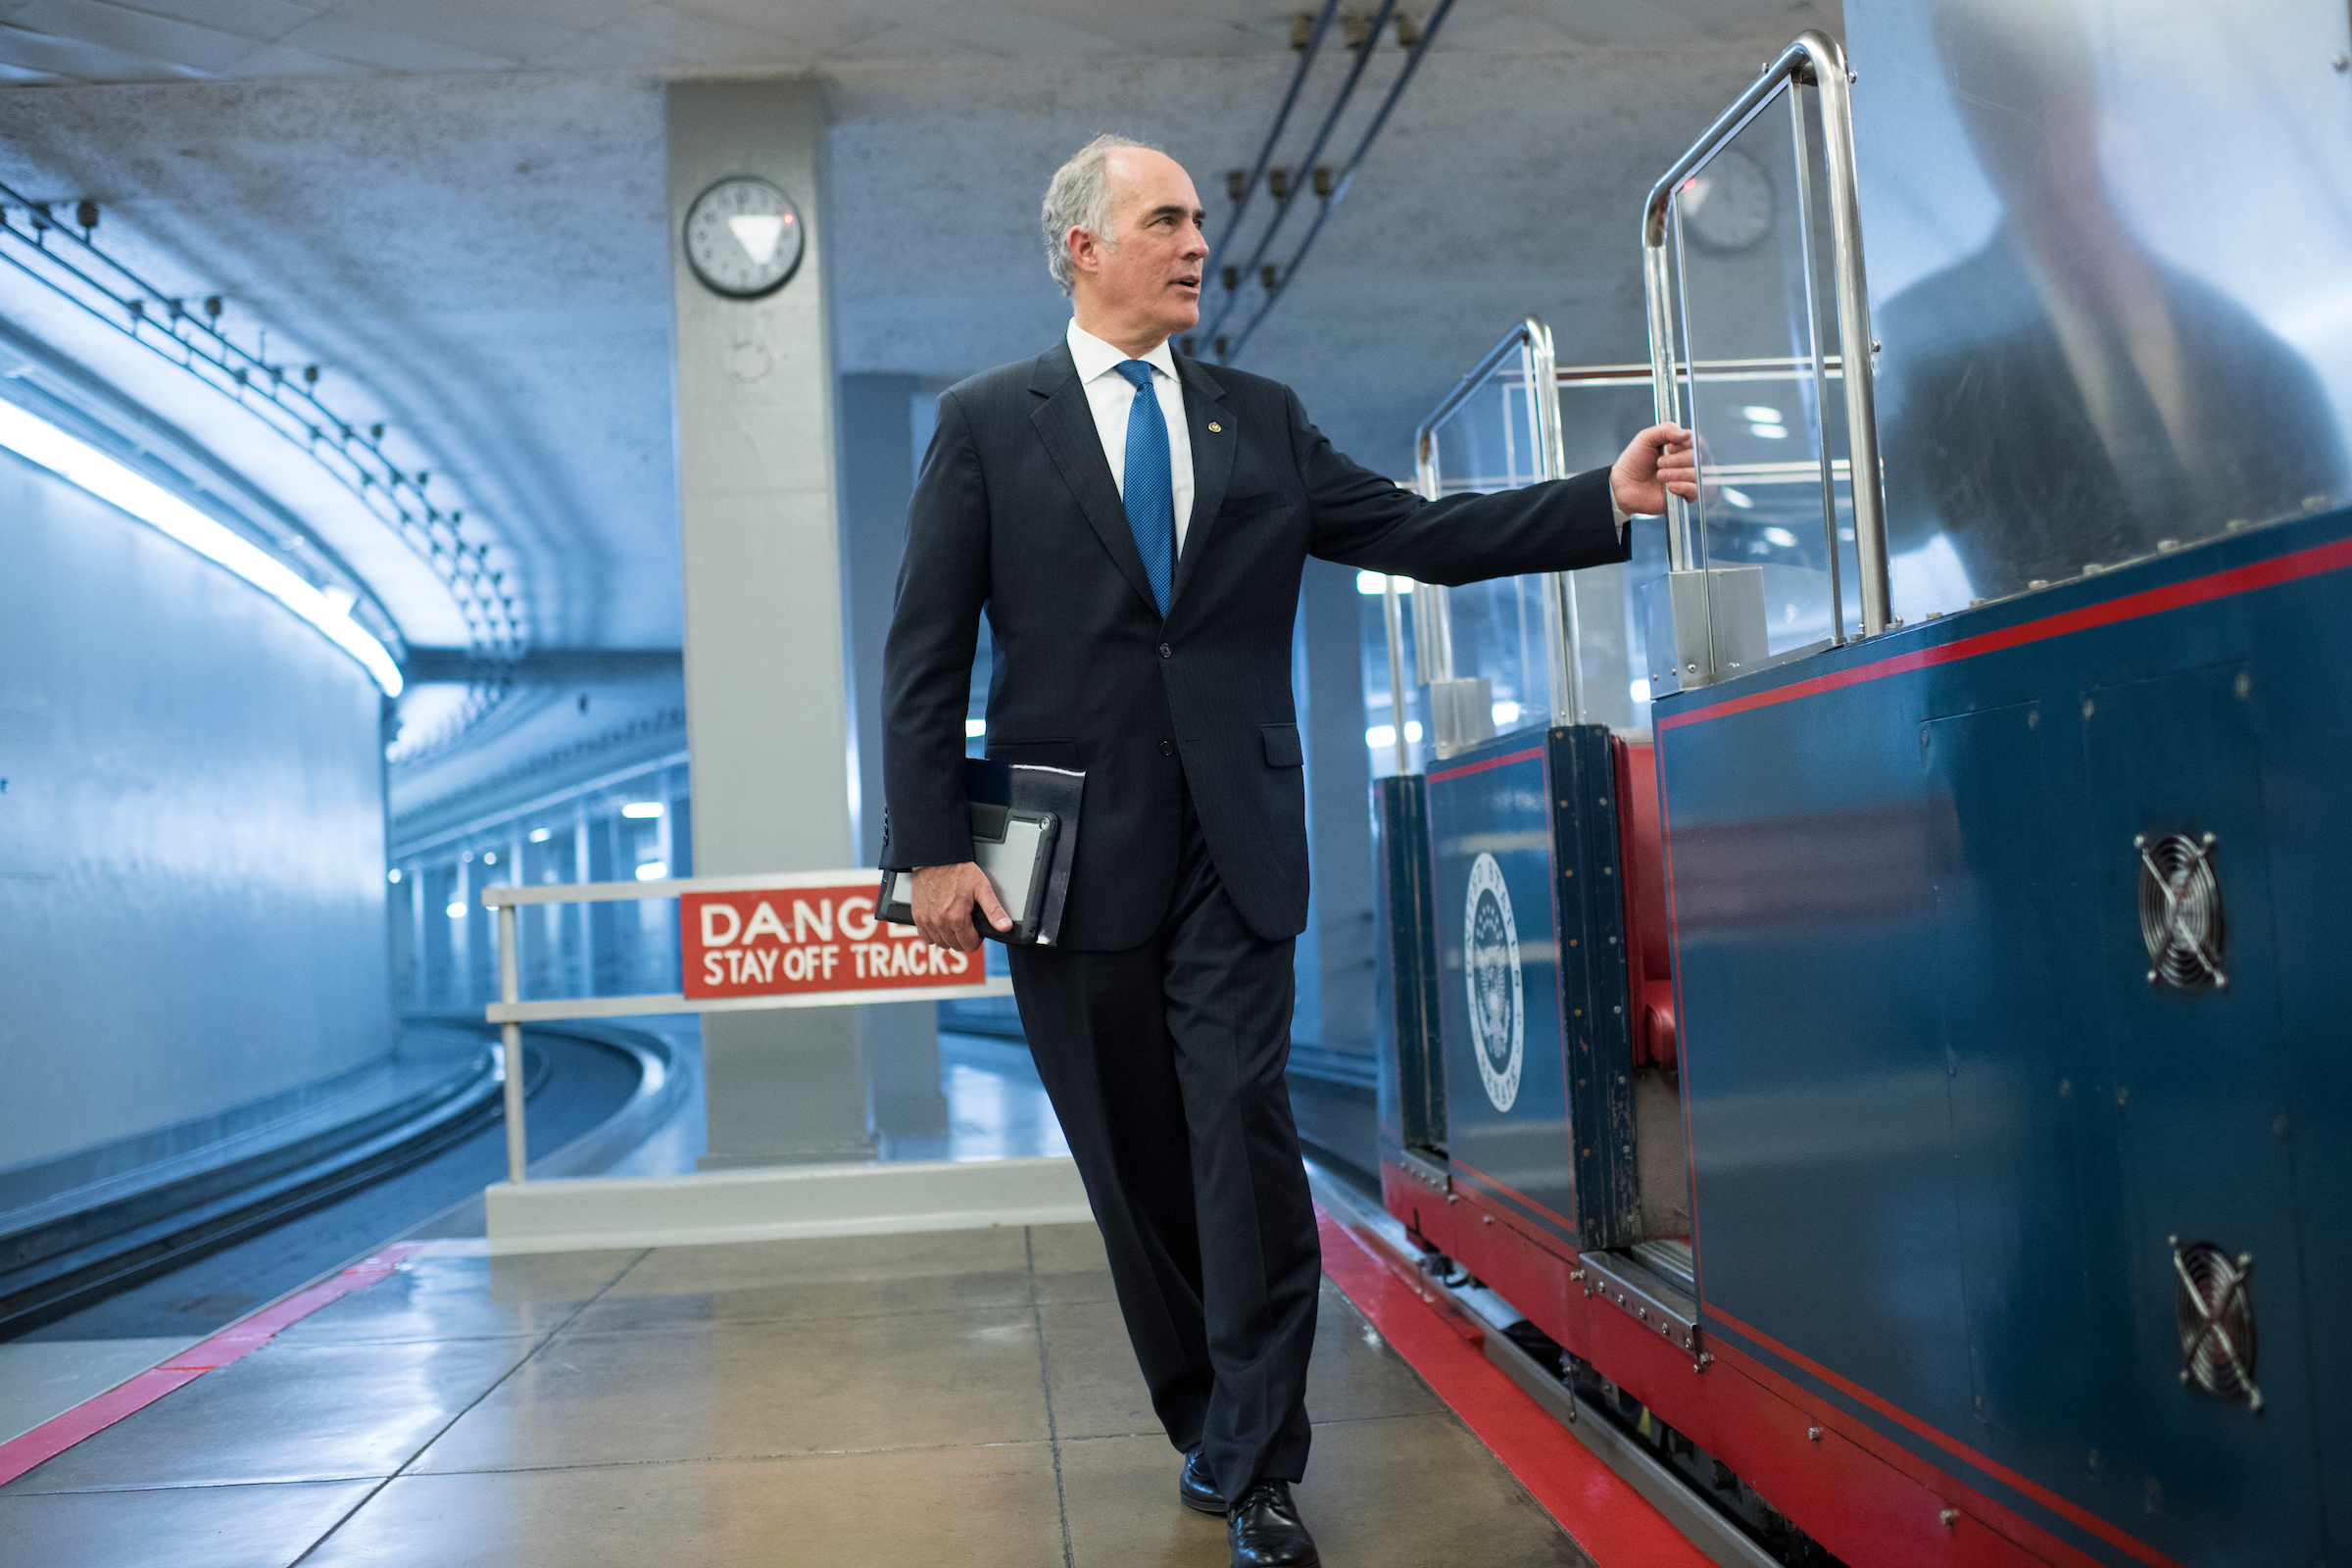 UNITED STATES - DECEMBER 05: Sen. Bob Casey, D-Pa, arrives in the Capitol before the Senate Policy luncheons on December 5, 2017. (Photo By Tom Williams/CQ Roll Call)